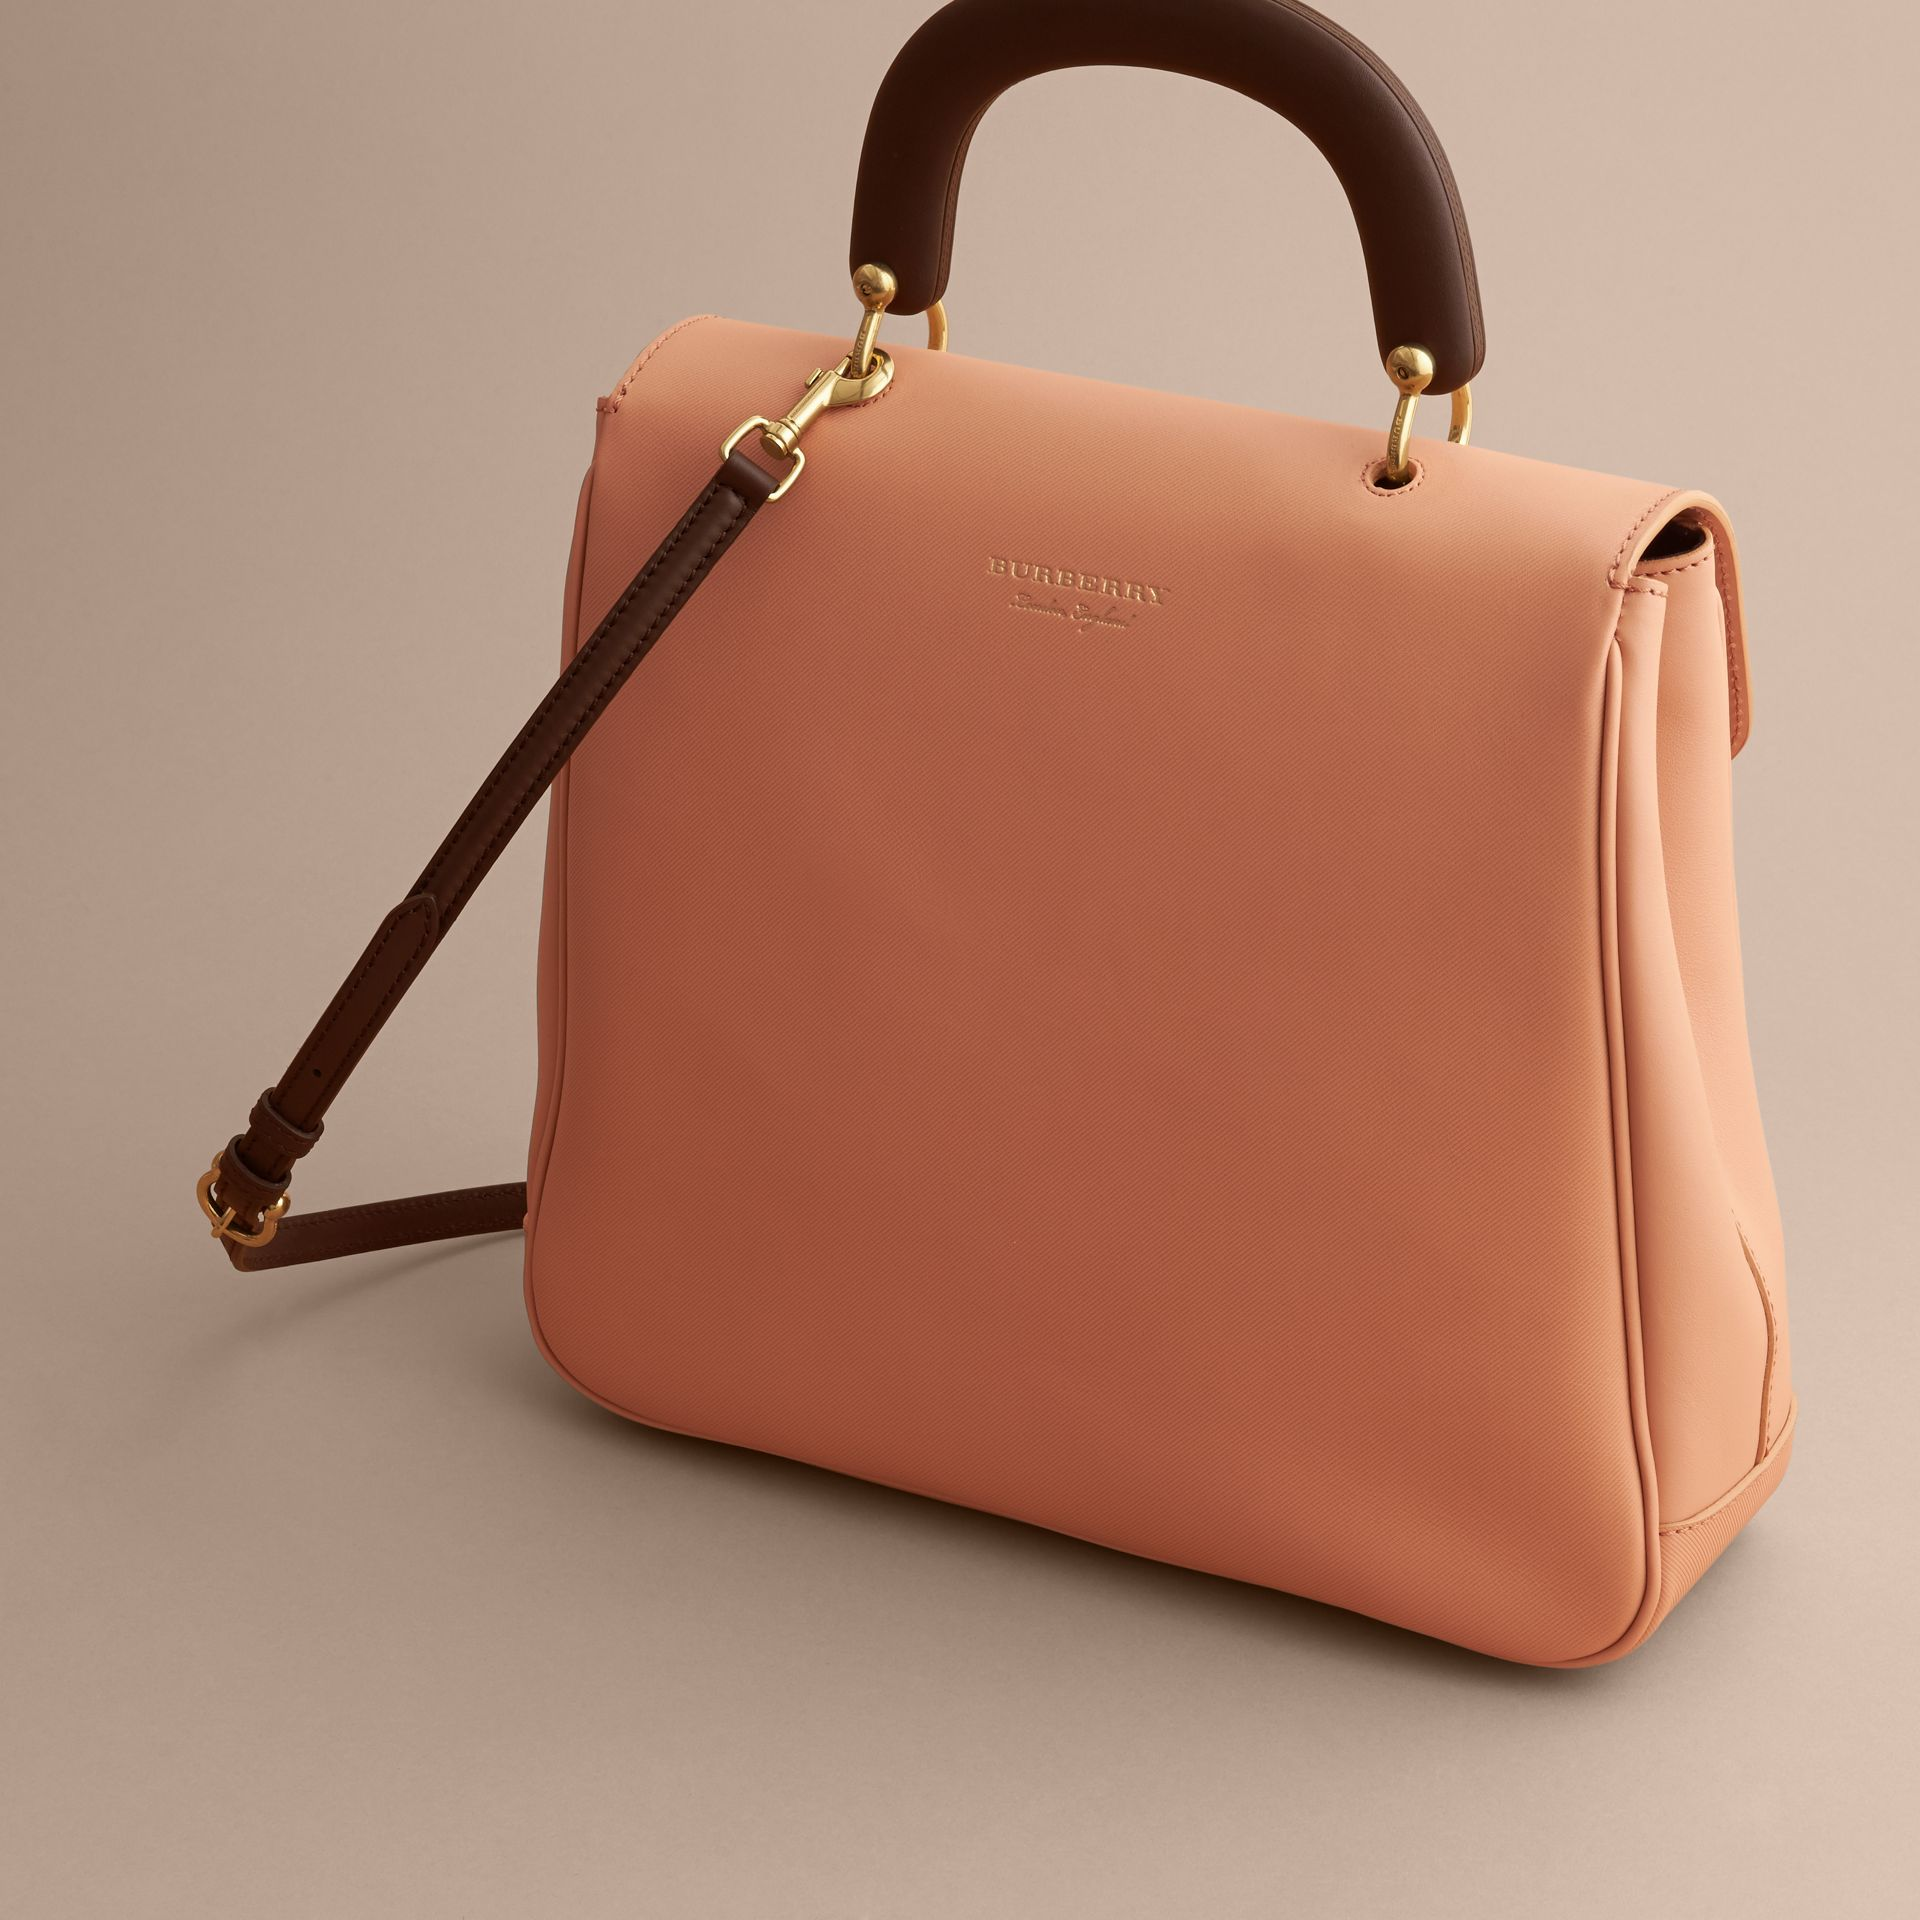 The Large DK88 Top Handle Bag in Pale Clementine - Women | Burberry Singapore - gallery image 6